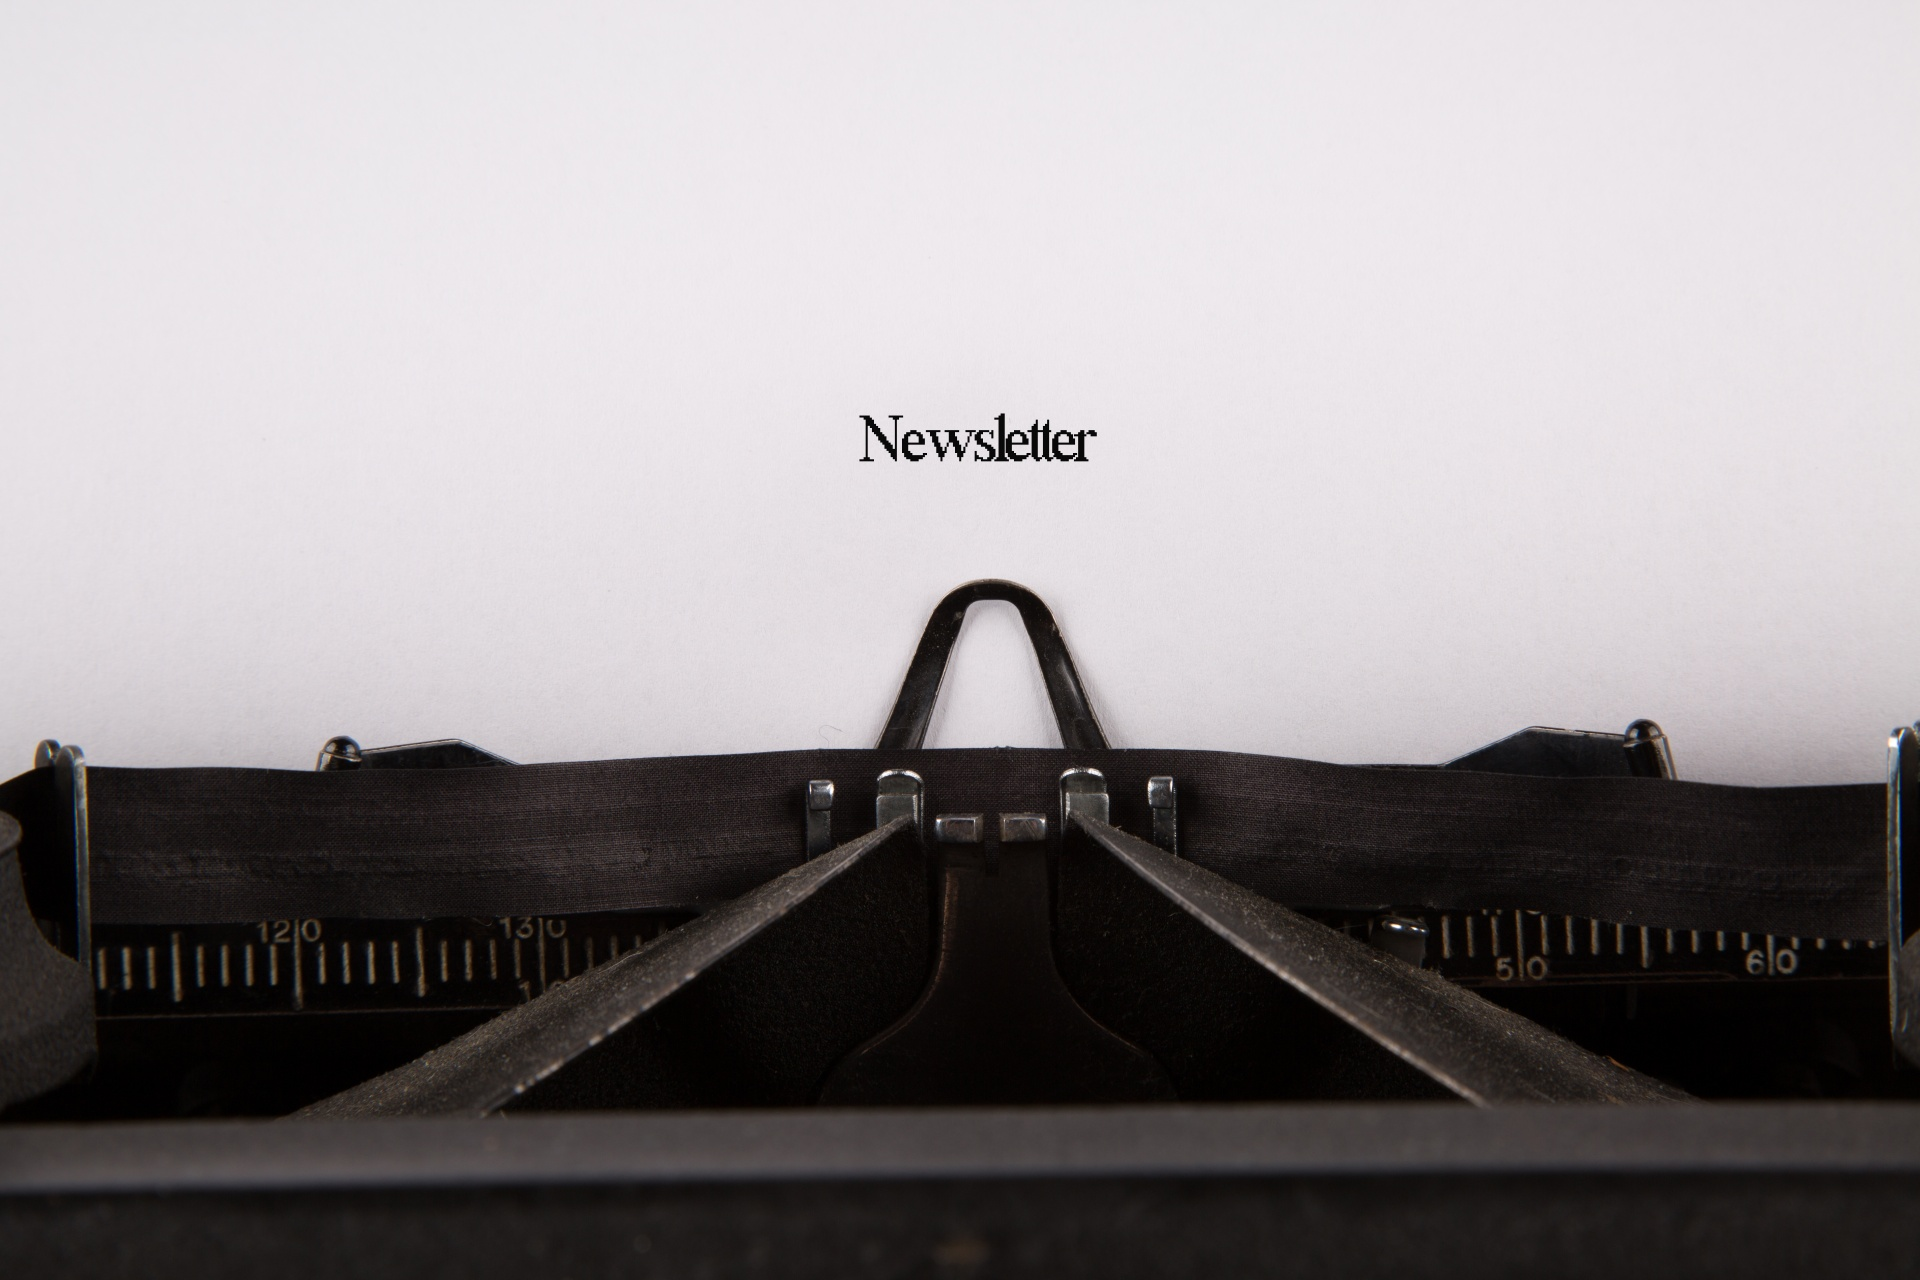 The newsletter is coming!